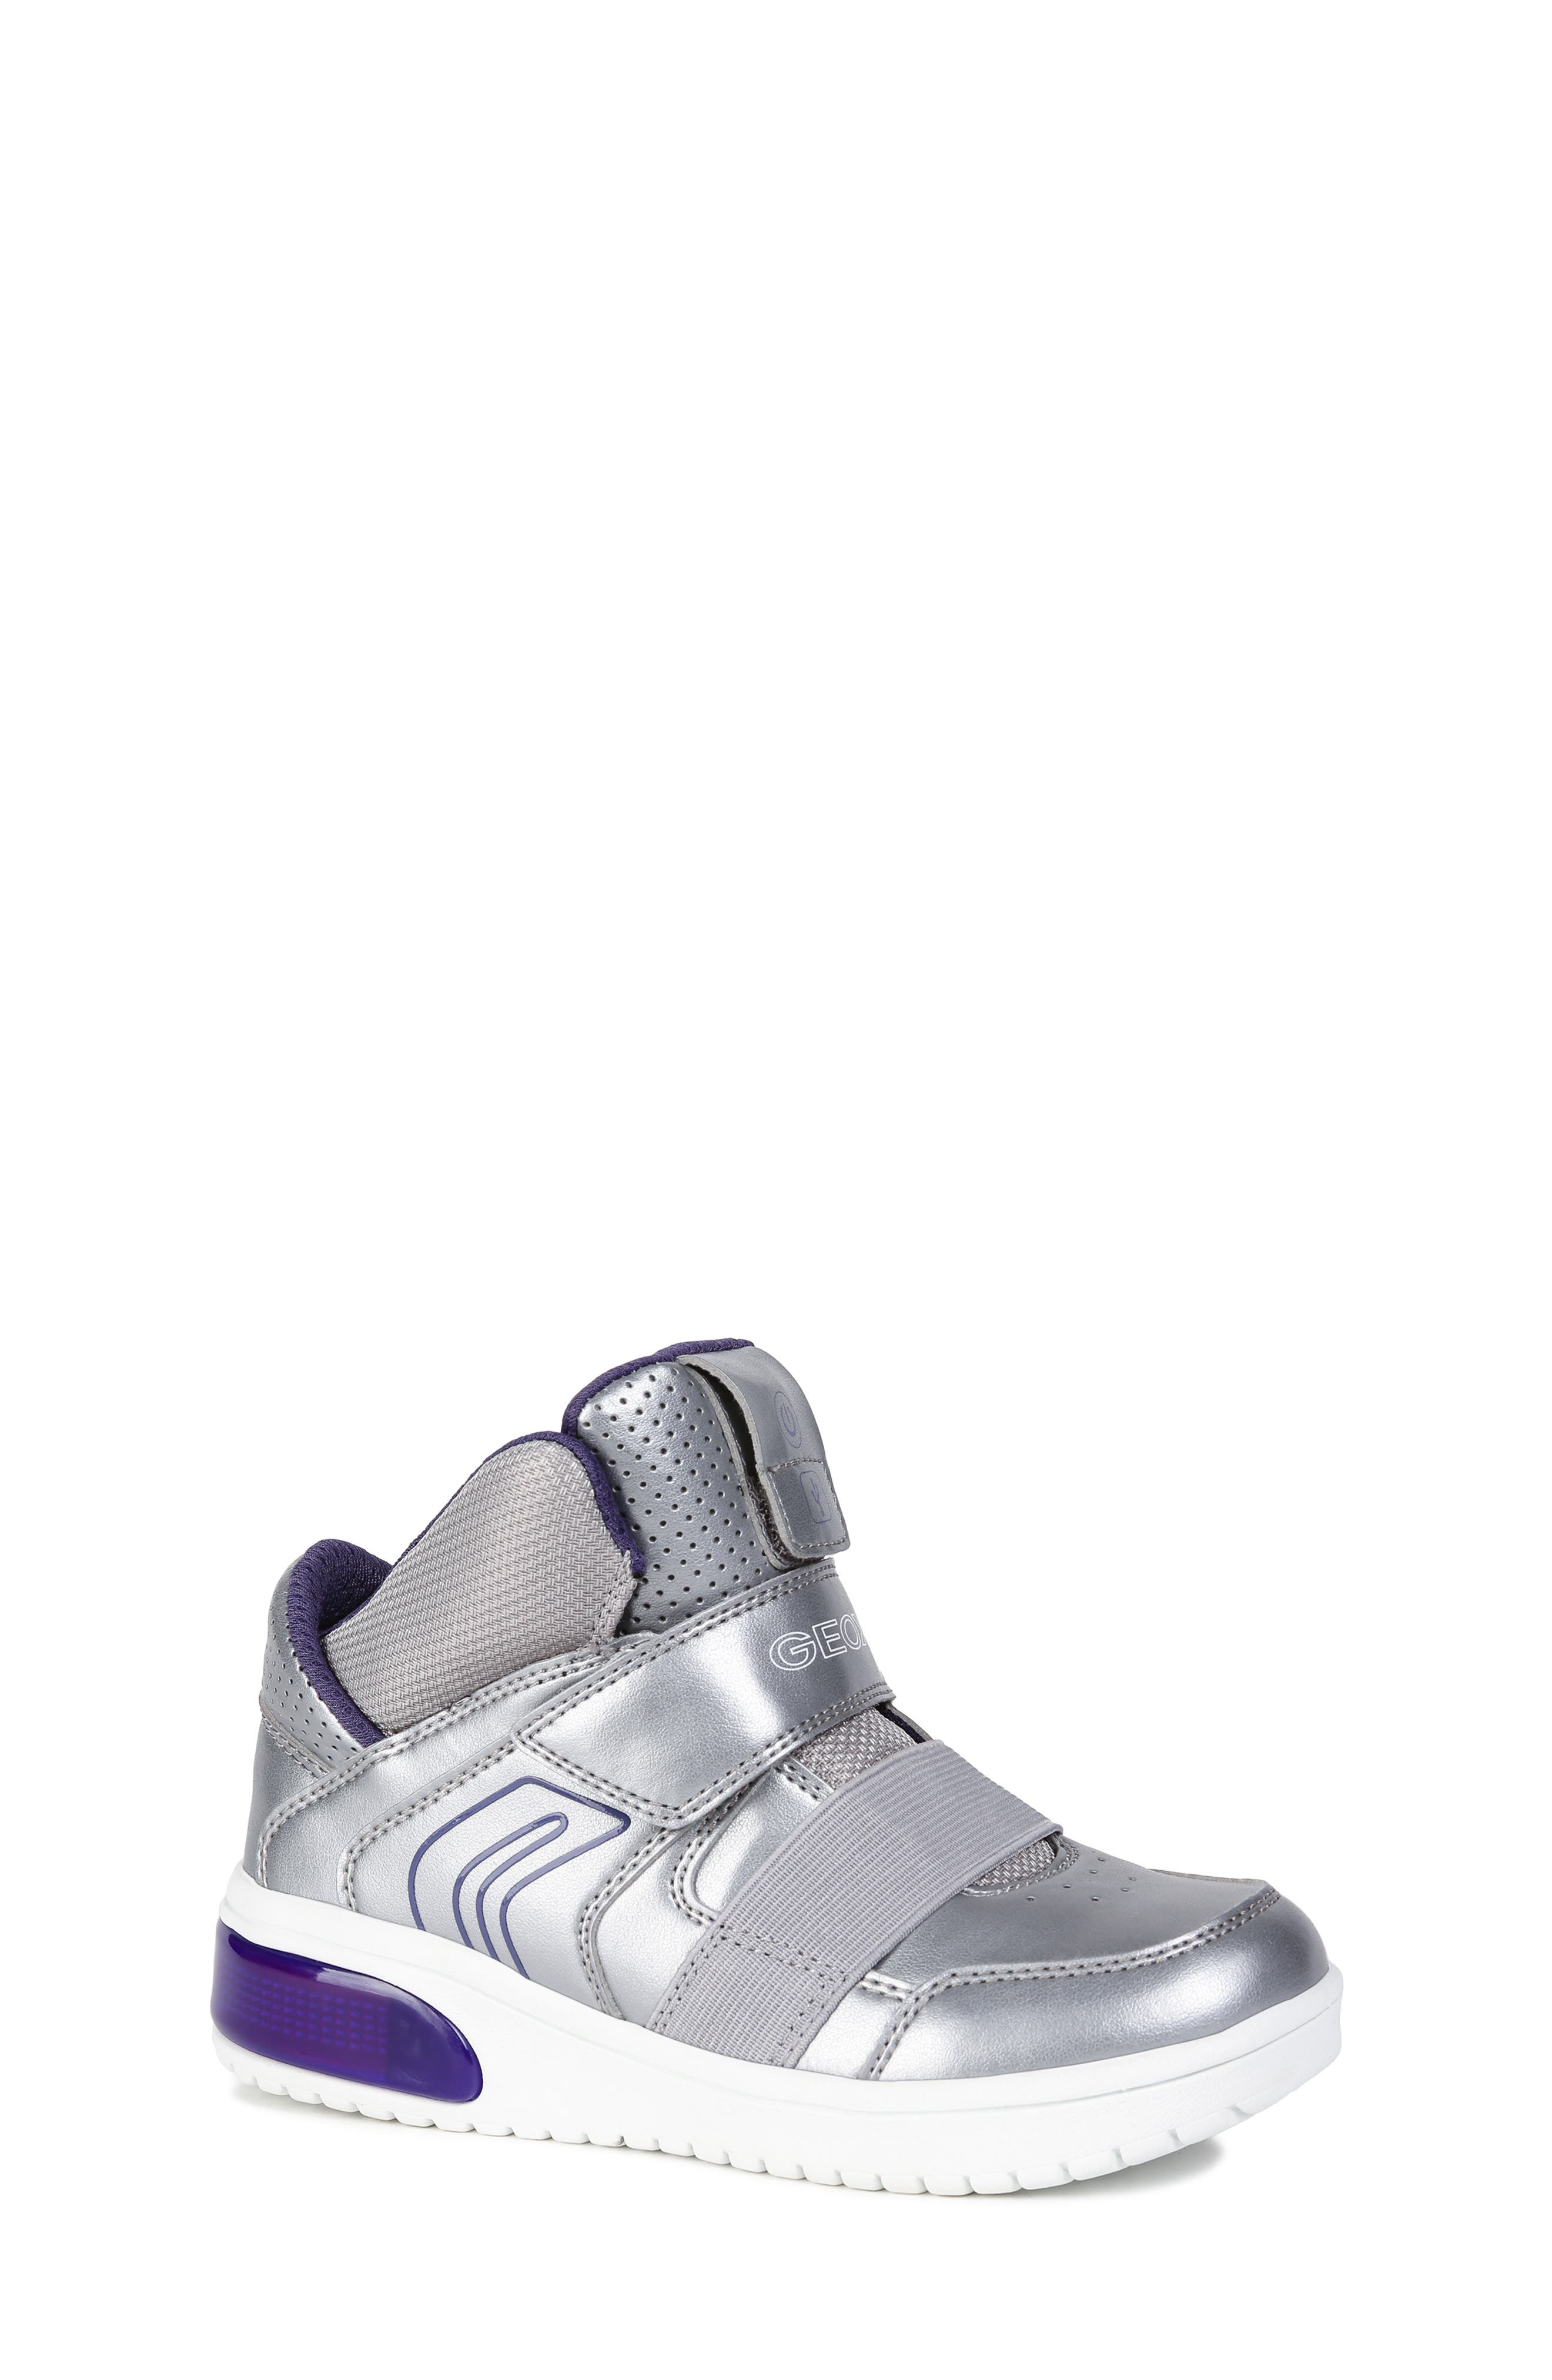 Xled Light Up Sneaker,                             Main thumbnail 1, color,                             SILVER/ VIOLET